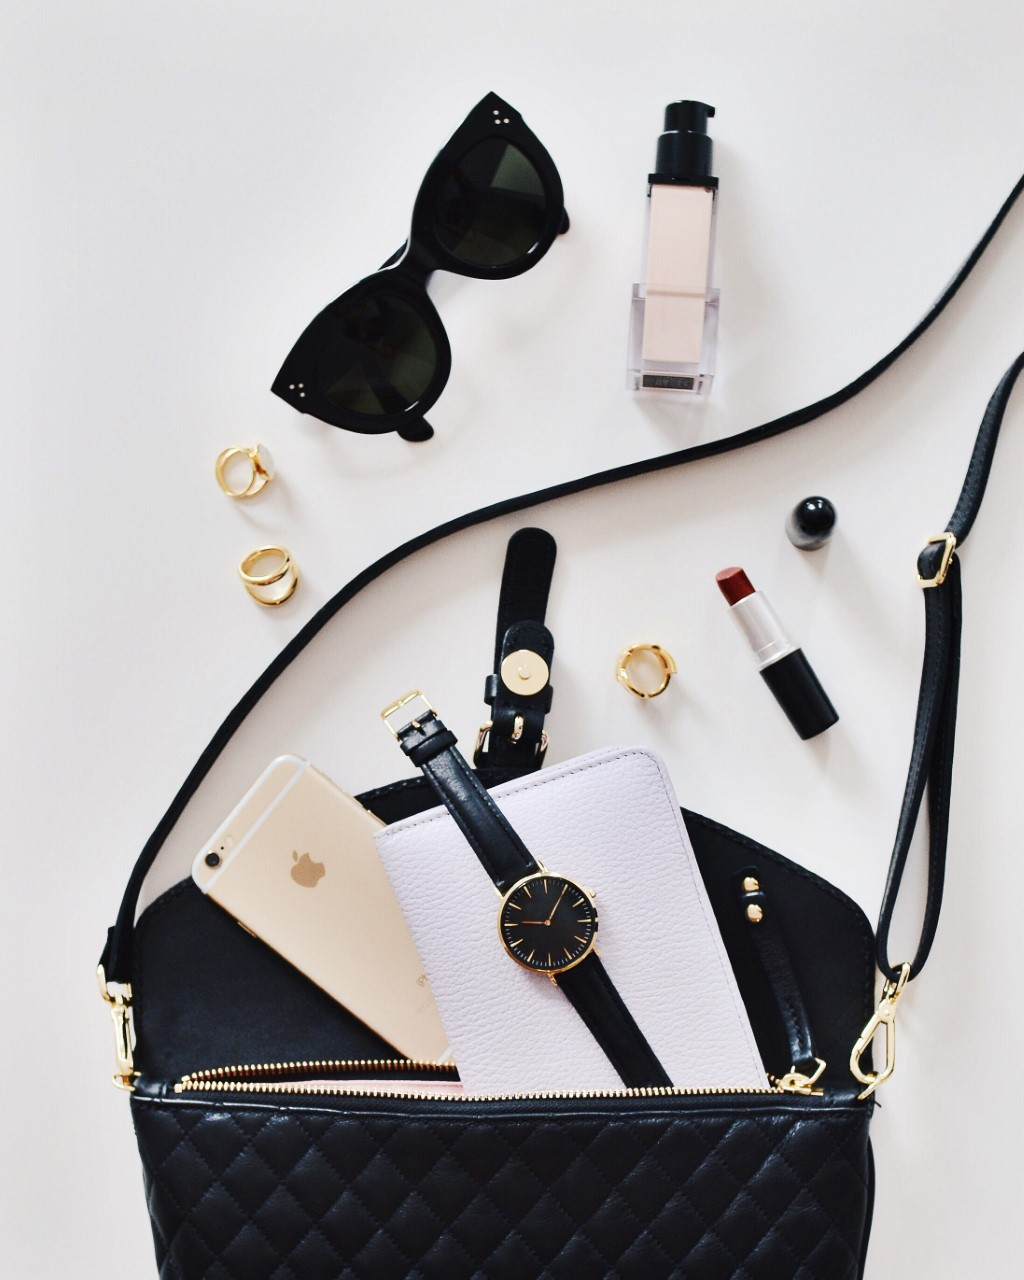 Handbag essentials for the Solo female entrepreneur